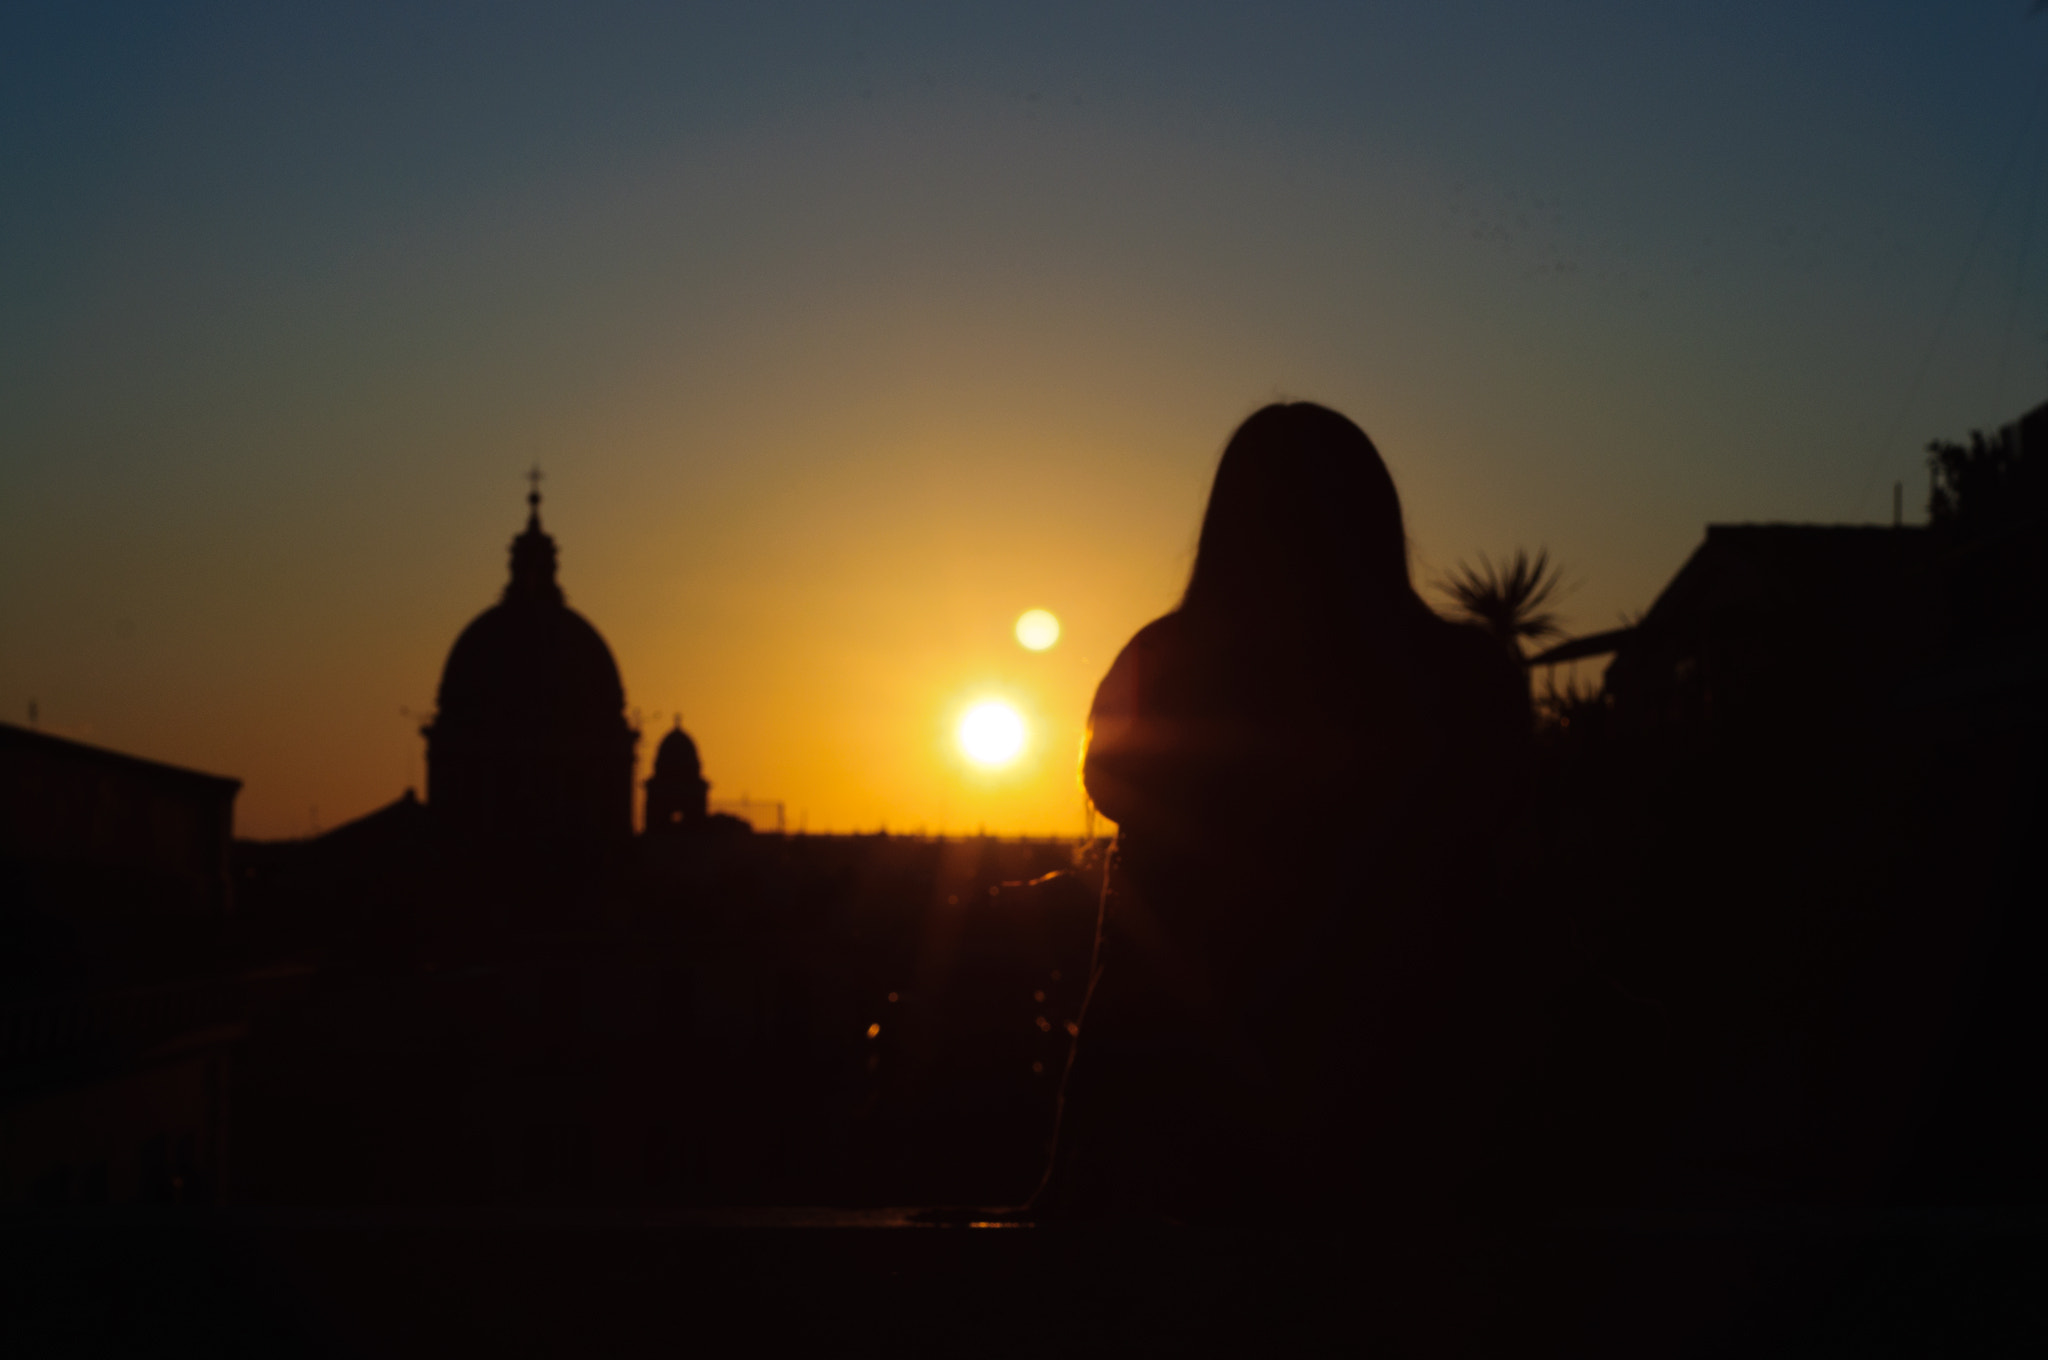 Photograph her sunset in Rome by Alessandro Galloni on 500px